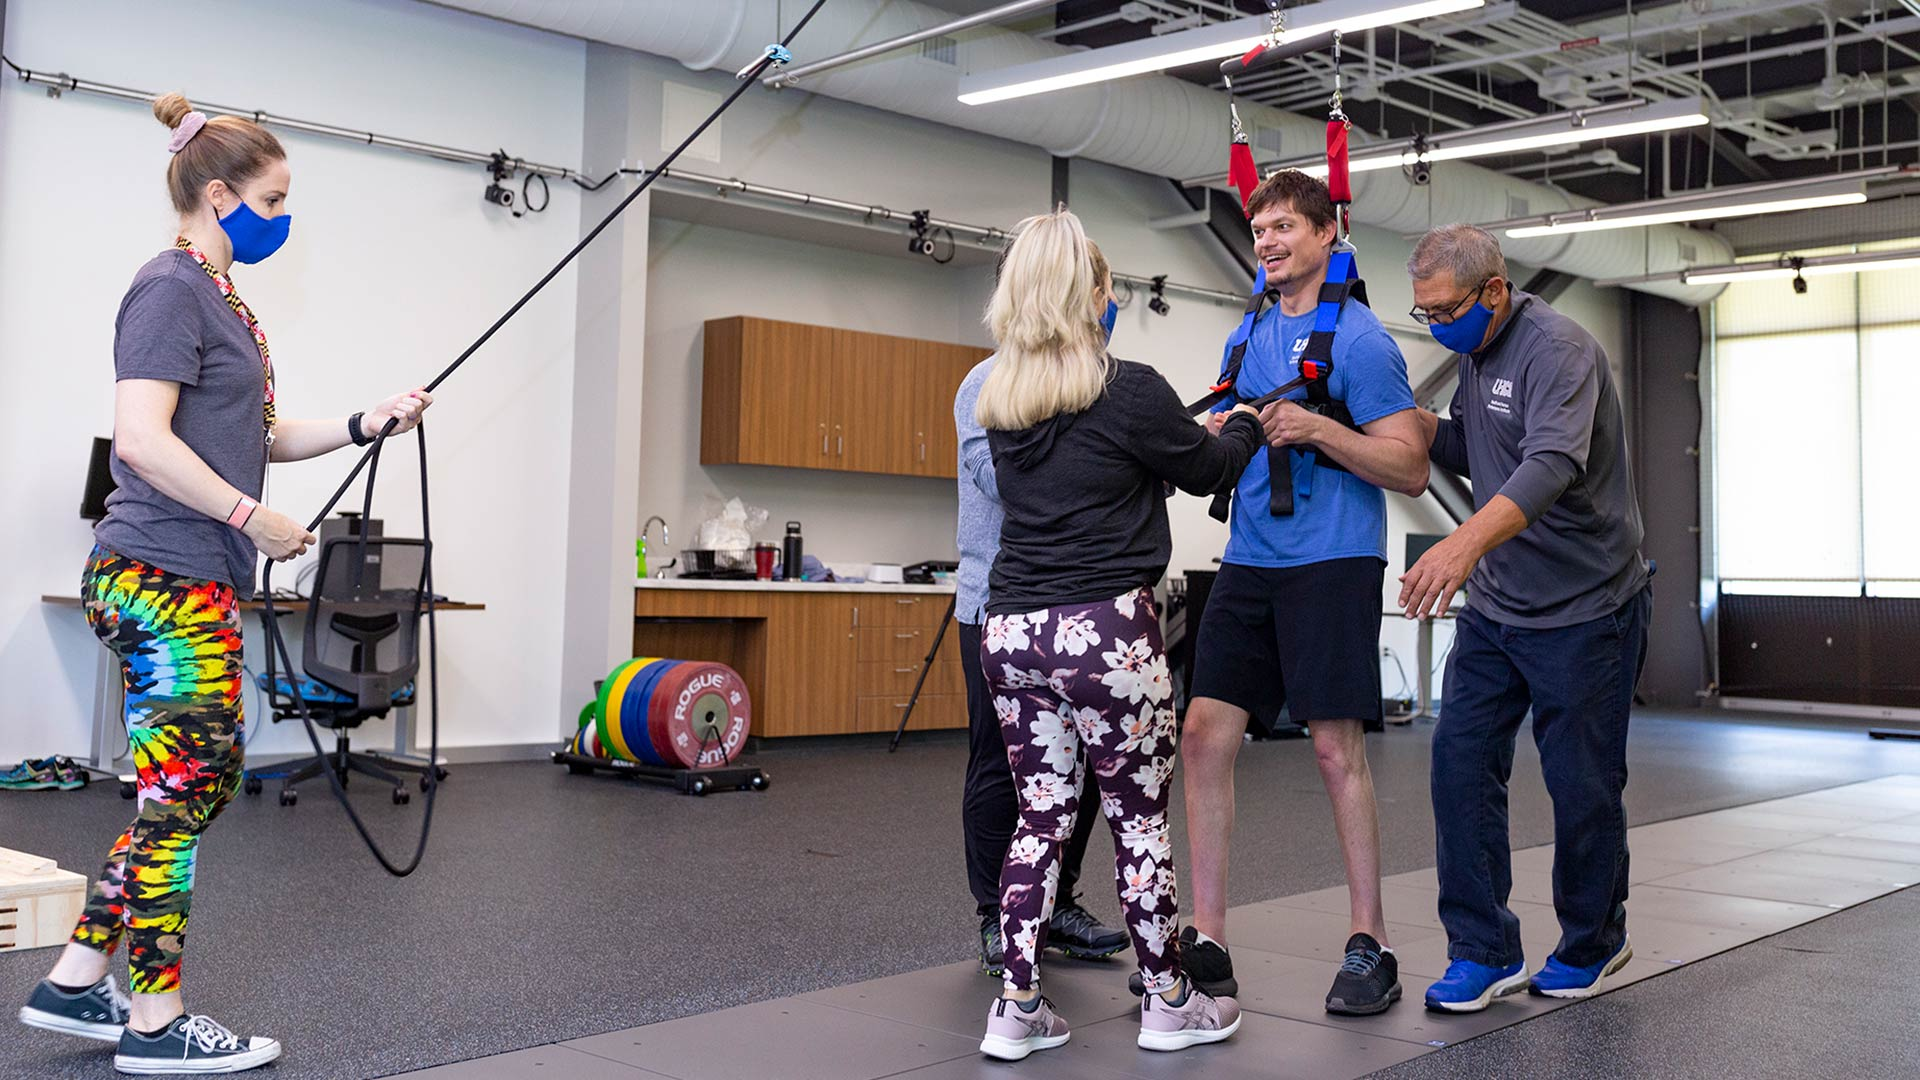 Sean Carter practices walking in a harness, supported on the right by HHPI Clinical Director Dr. Joe Hazzard, and guided by graduate students in UHCL's Exercise Sciences program.